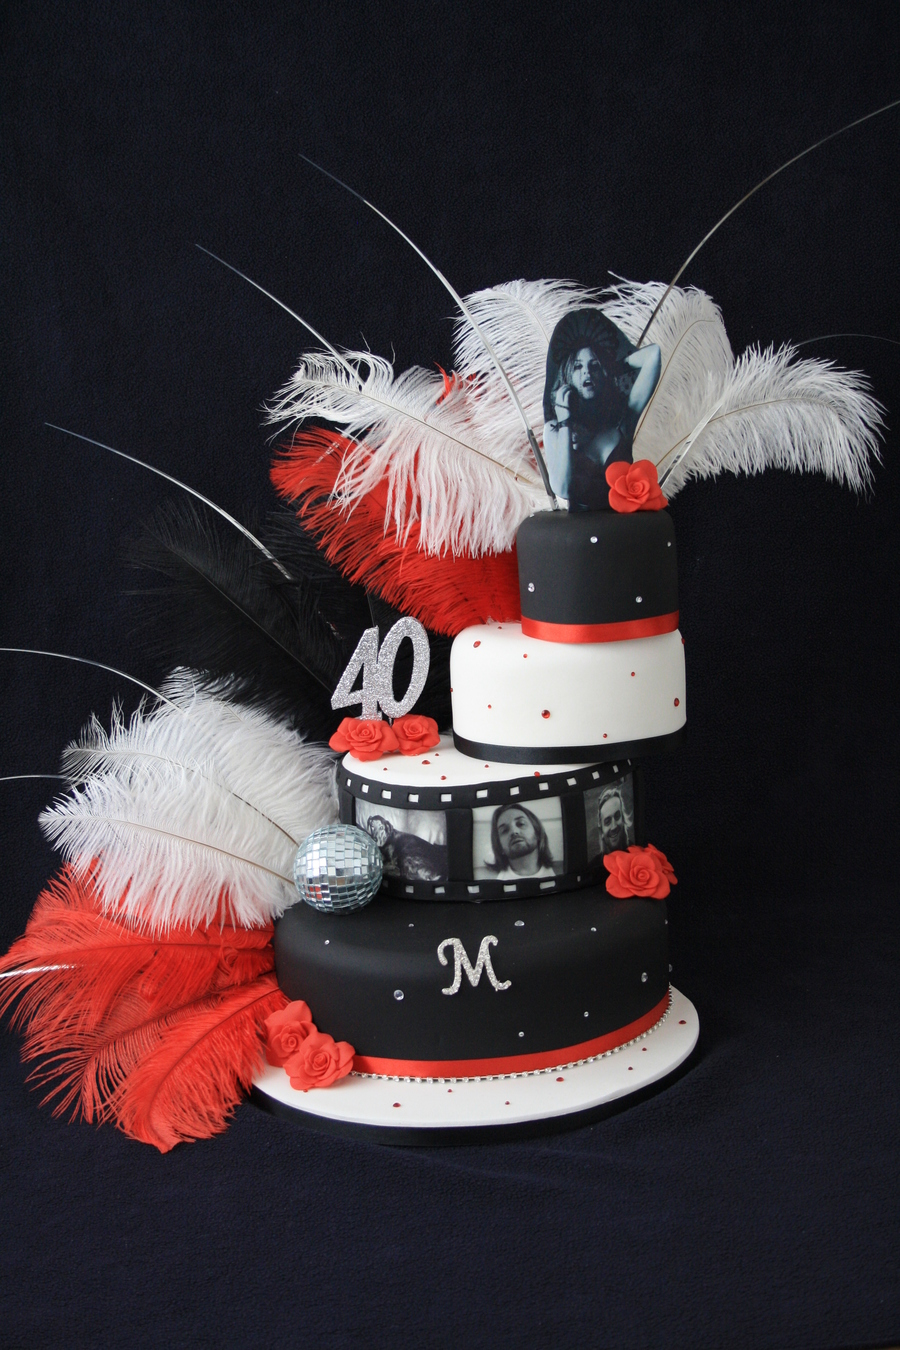 A Friend Asked Me To Make Him A Cake That Was Themed Glamour N Disco This Is What He Got He Said It Was A Bit Camp A Lot Him on Cake Central